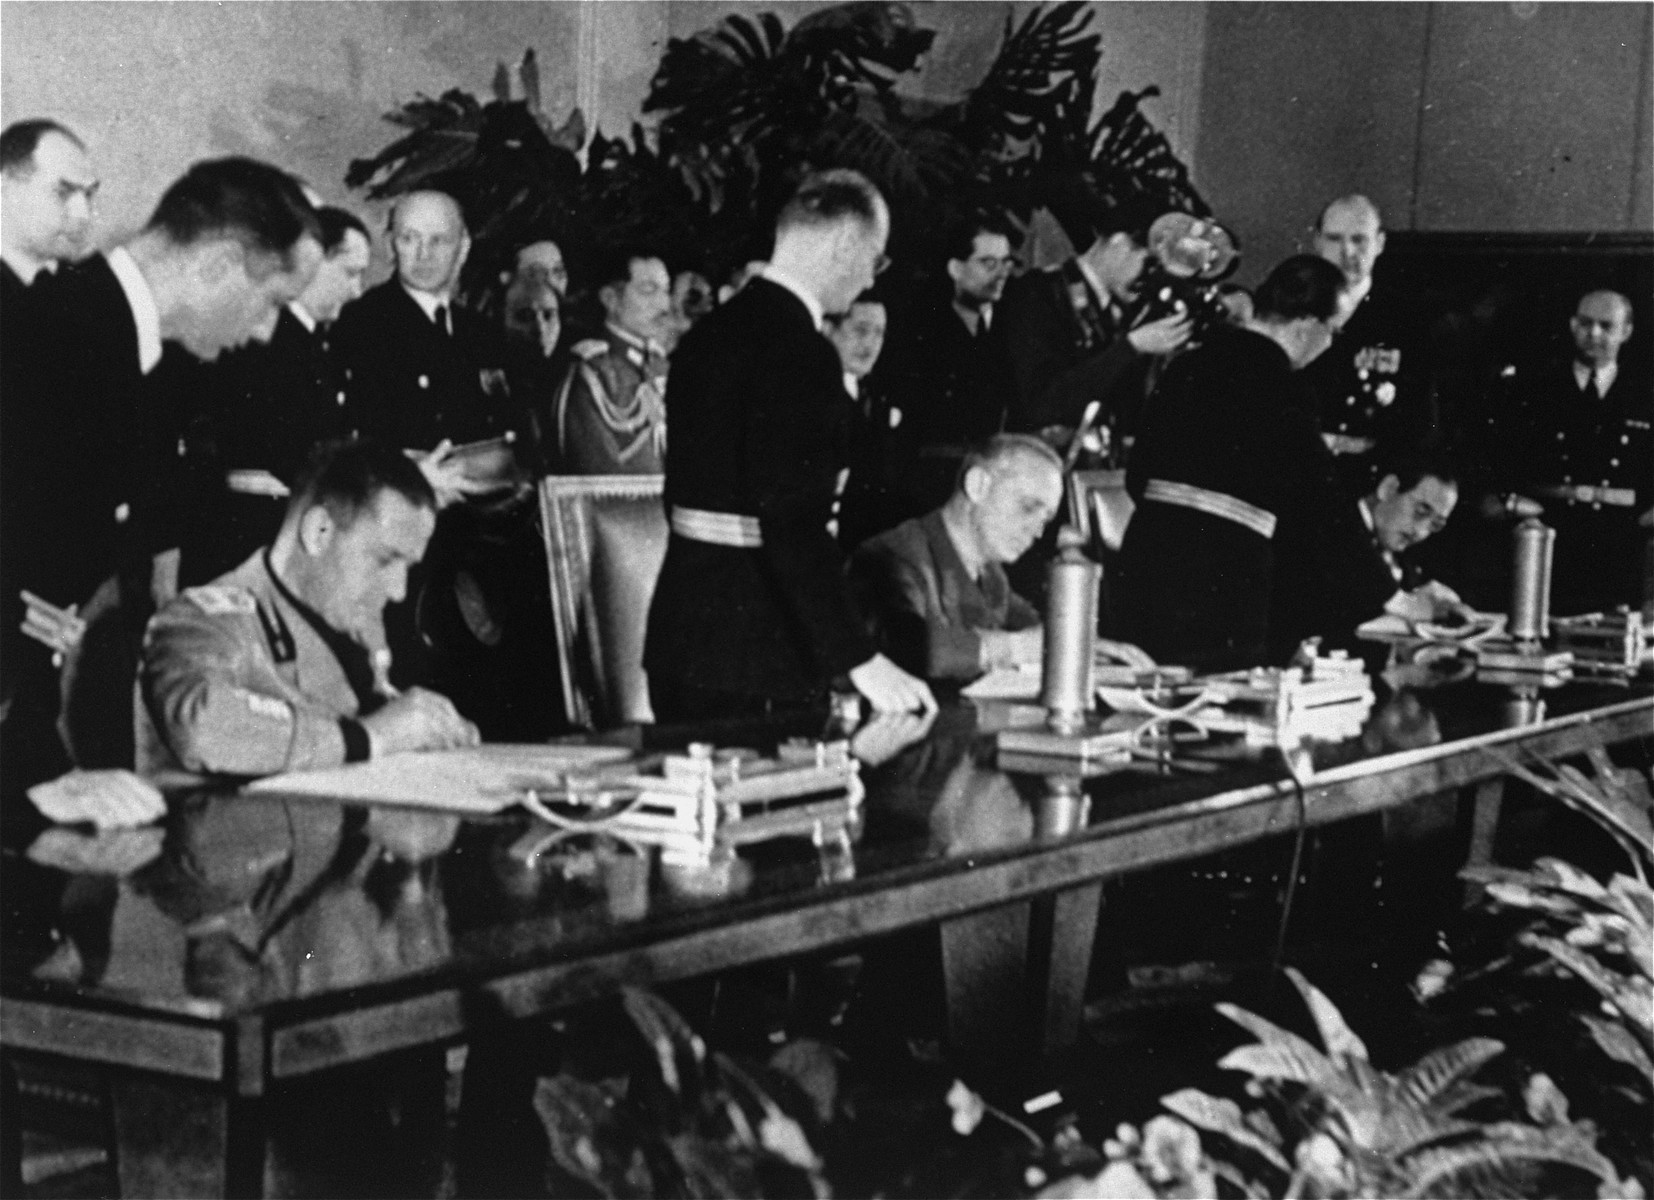 Representatives of the governments of Italy, Germany, and Japan sign the Three Power Pact, establishing the Rome-Berlin-Tokyo Axis.  Seated left to right are: Galeazzo Ciano (Italy), Joachim von Ribbentrop (Germany), and the Japanese ambassador, Kurusu.